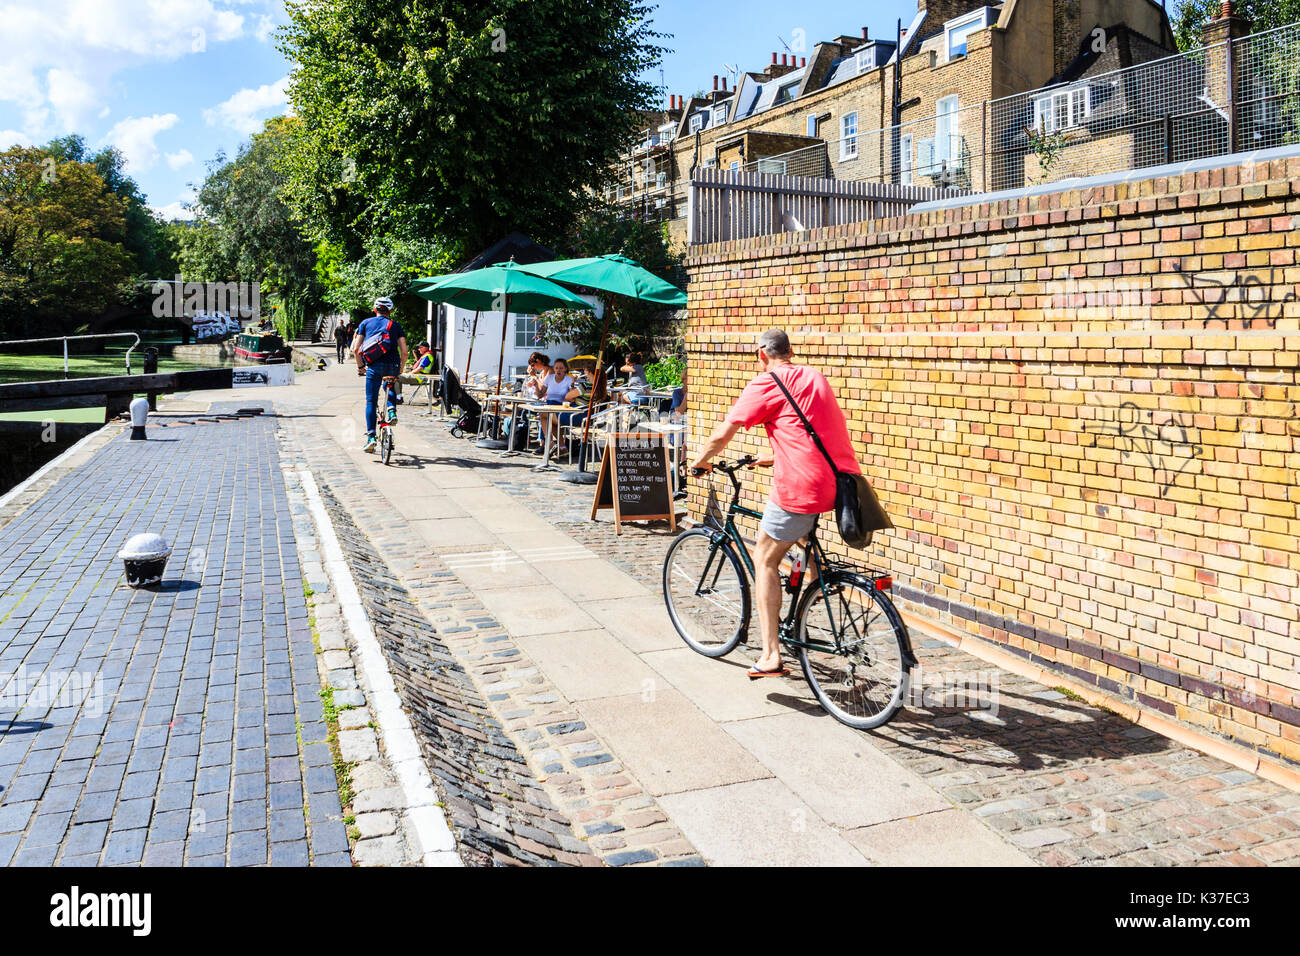 Two cyclists on the towpath of Regent's Canal, Islington, London, UK, people sitting outside at a canalside cafe - Stock Image